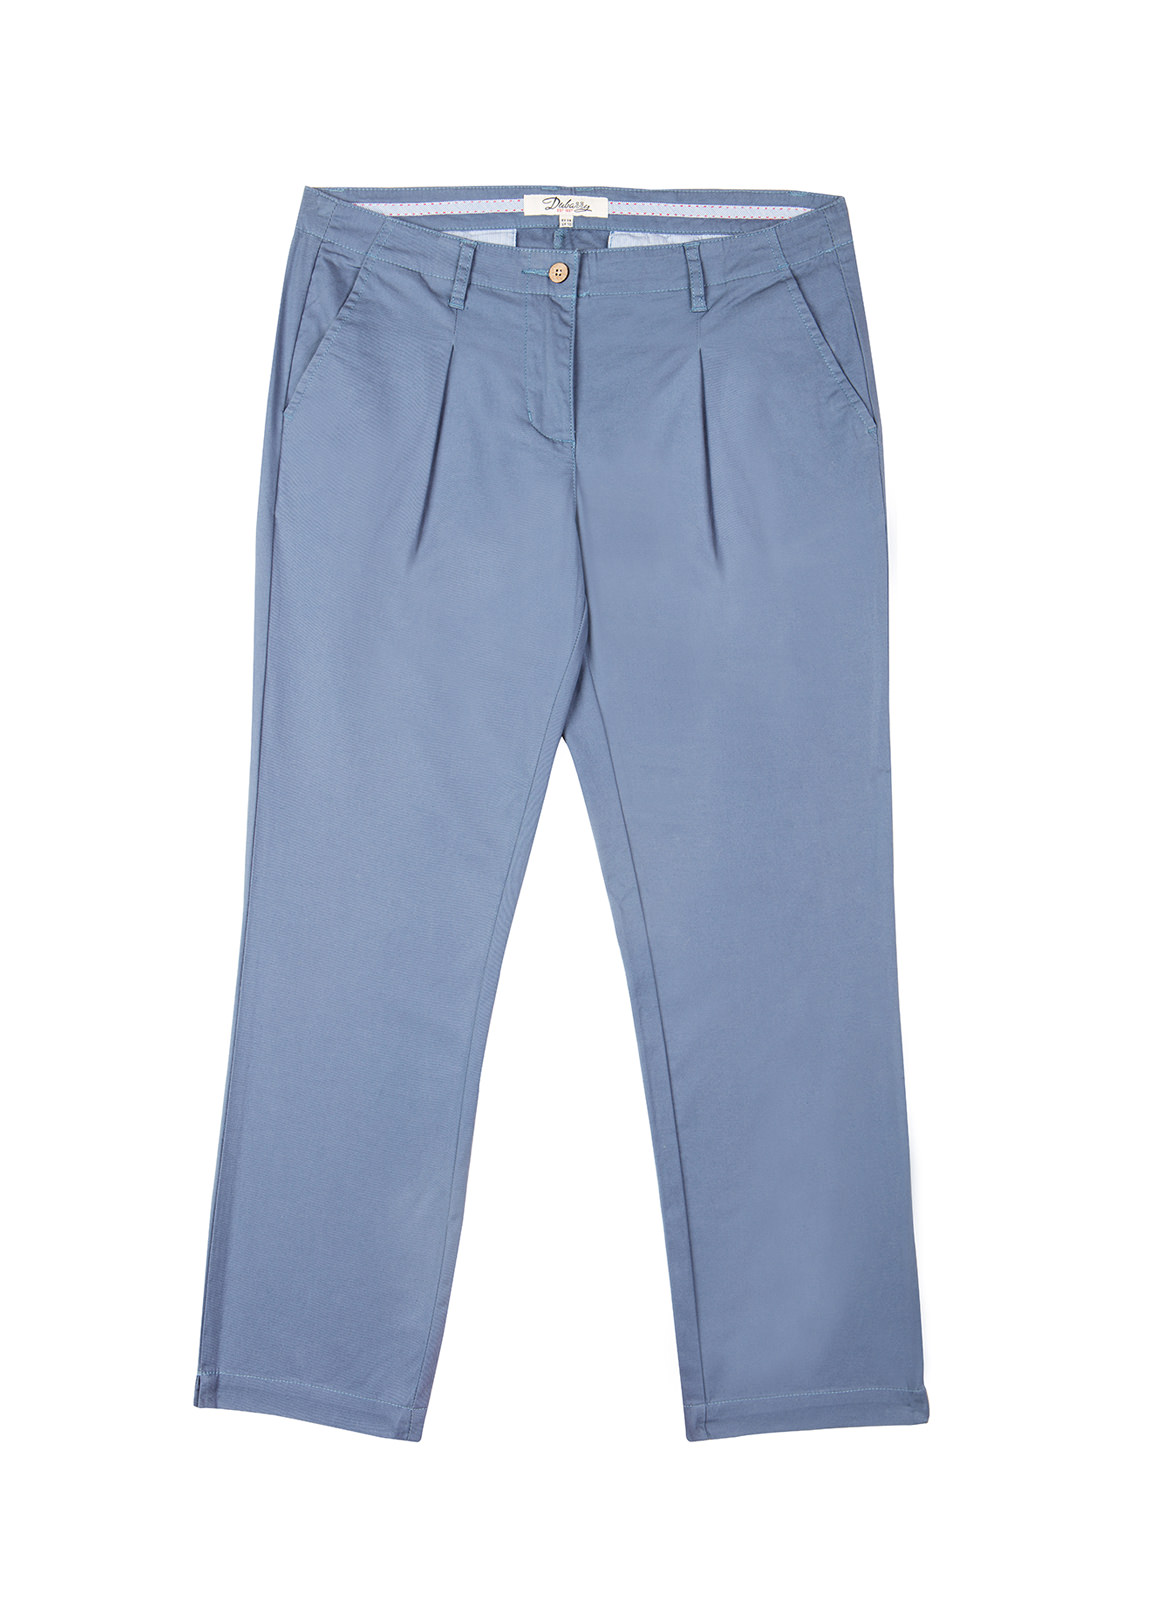 Dubarry_ Reed Capri Trousers - Denim_Image_2